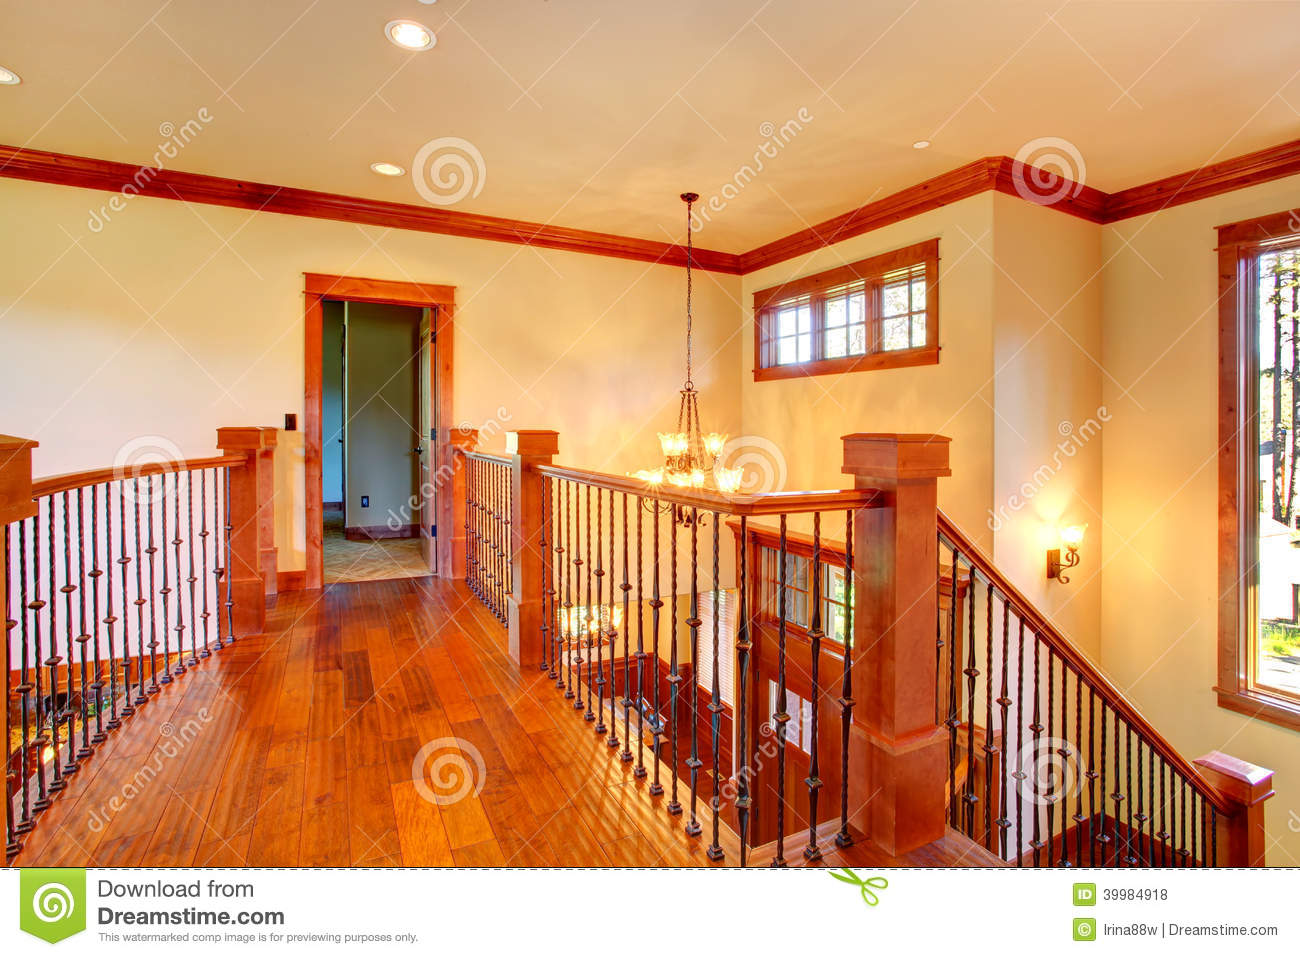 Balcony Railing Vector on Plan View Furniture Clip Art